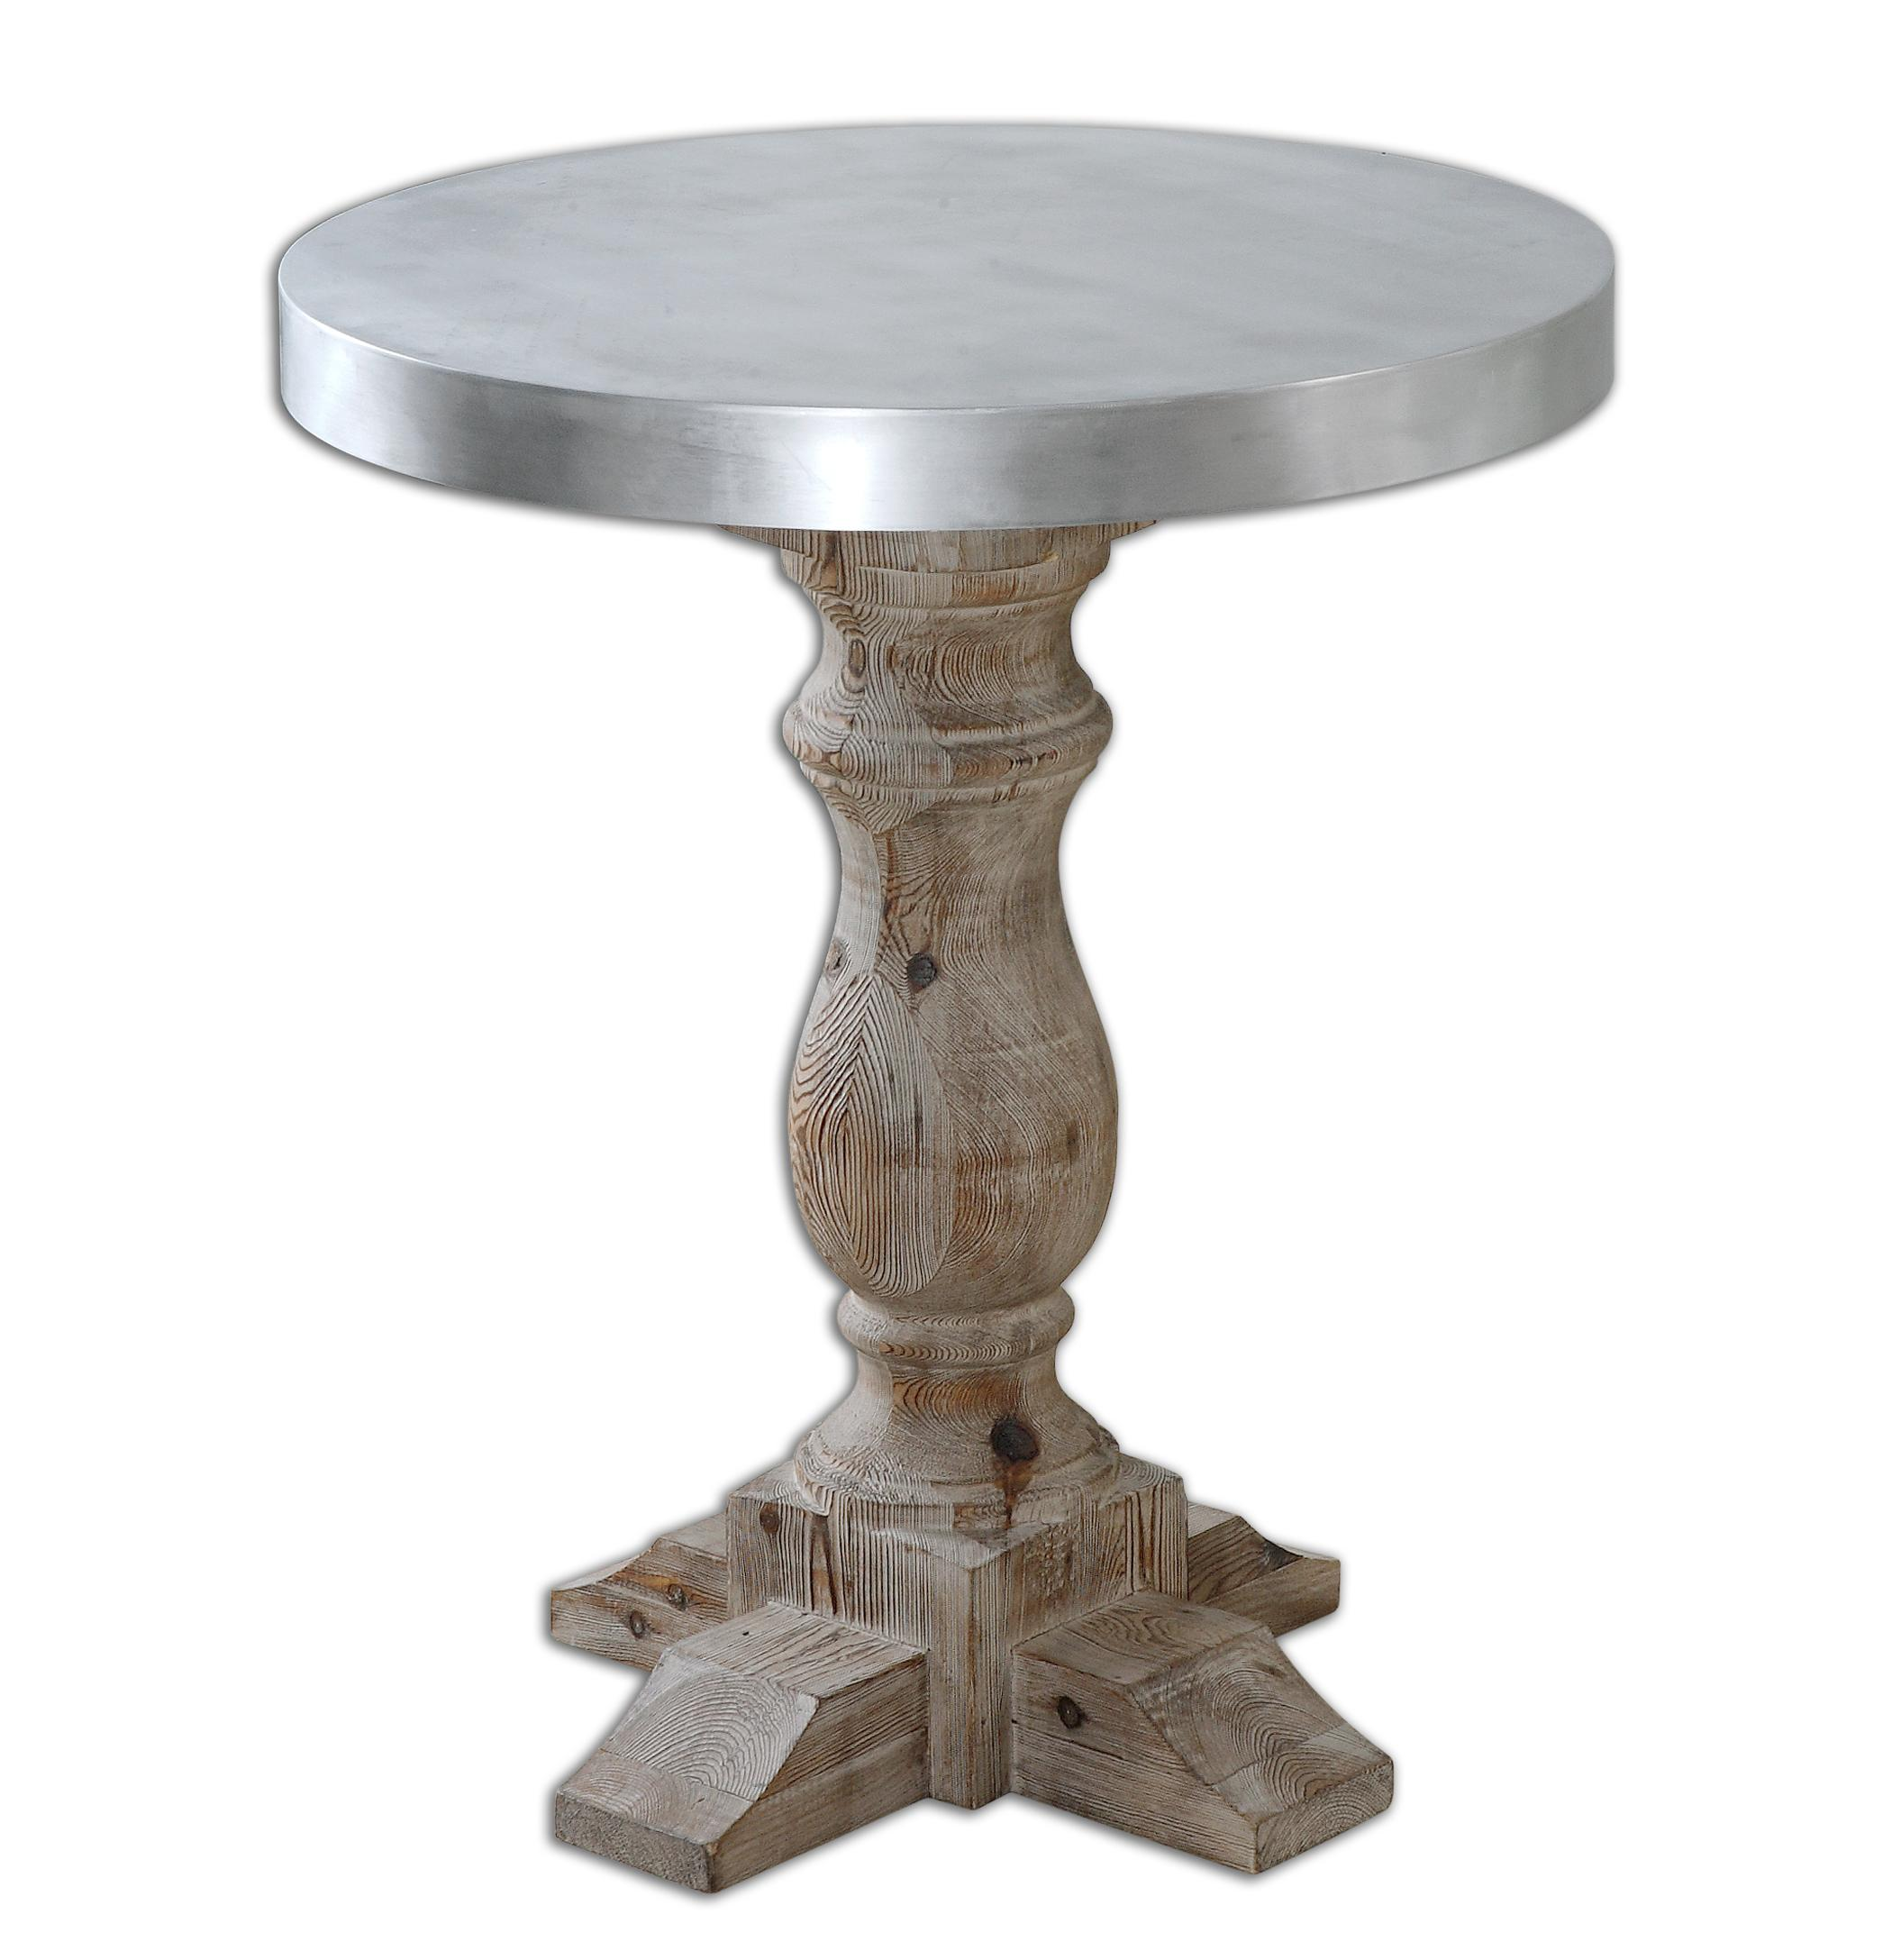 Accent Furniture - Occasional Tables Martel Accent Table by Uttermost at Upper Room Home Furnishings